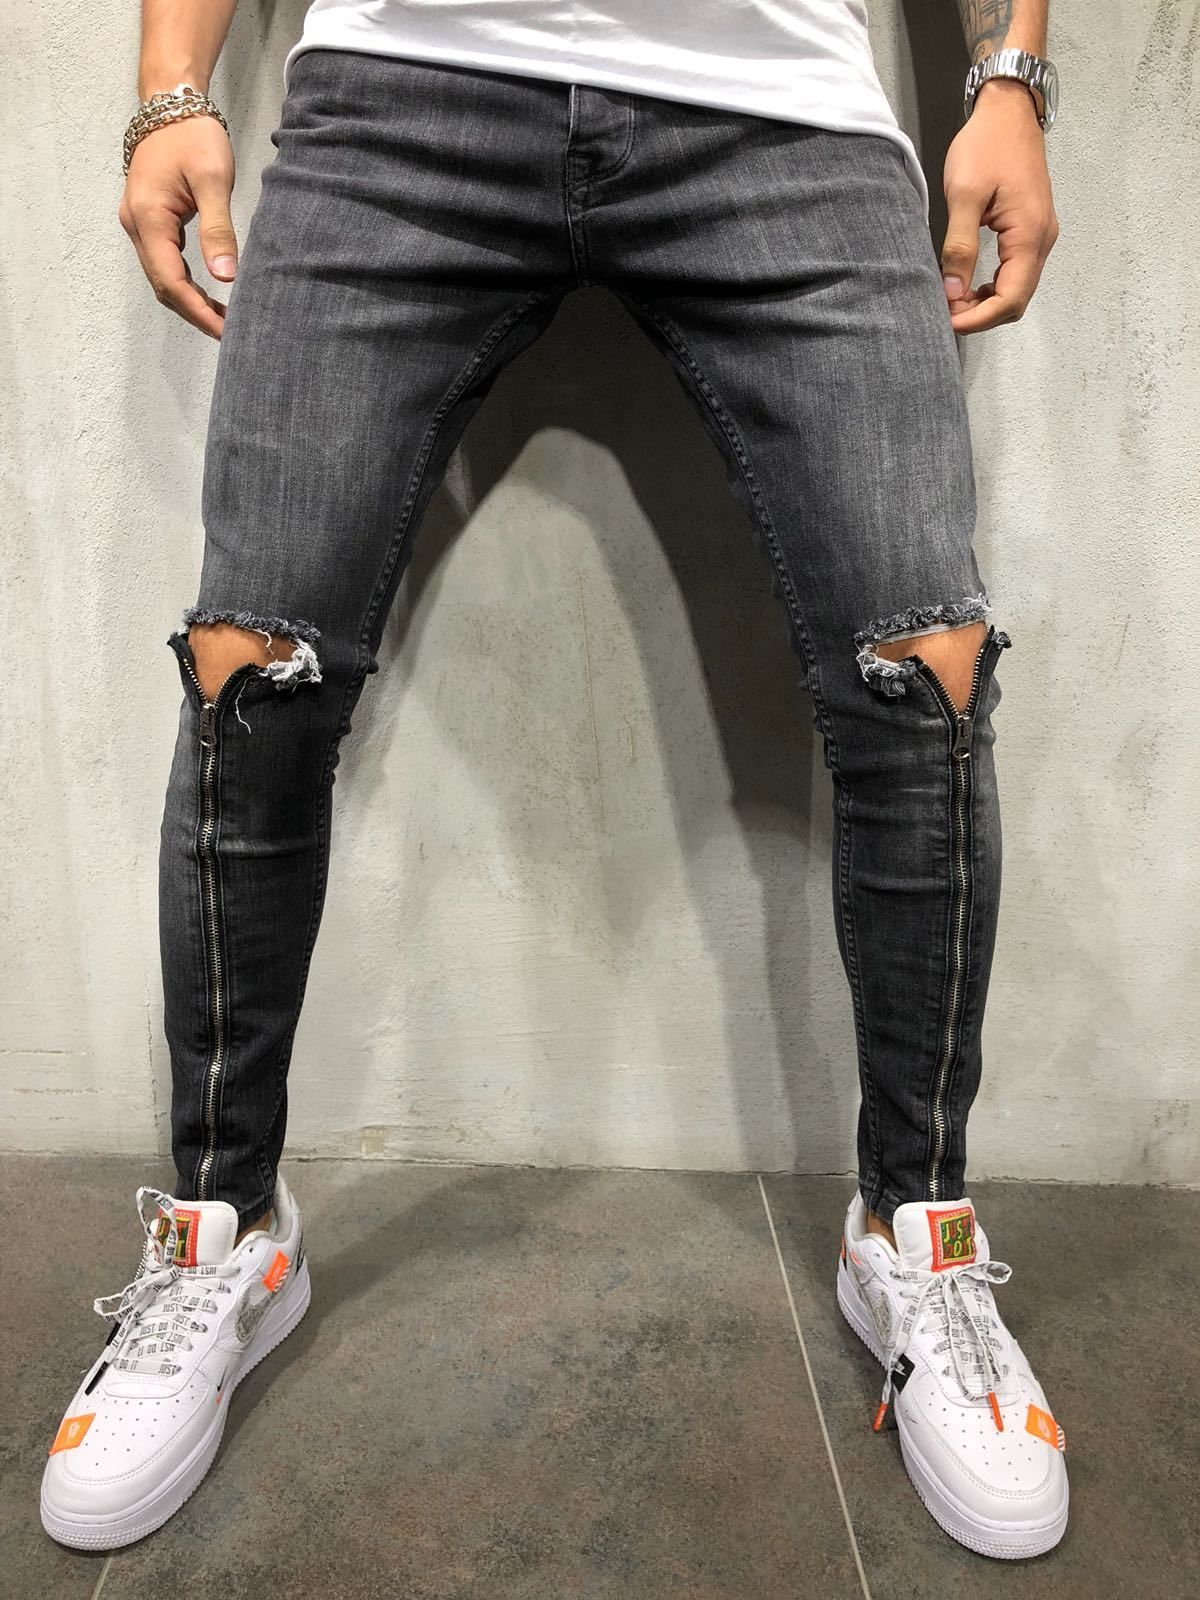 5d5f261f Zipper Jeans - Dark Gray in 2019 | Jeans | Streetwear jeans, Shoes ...